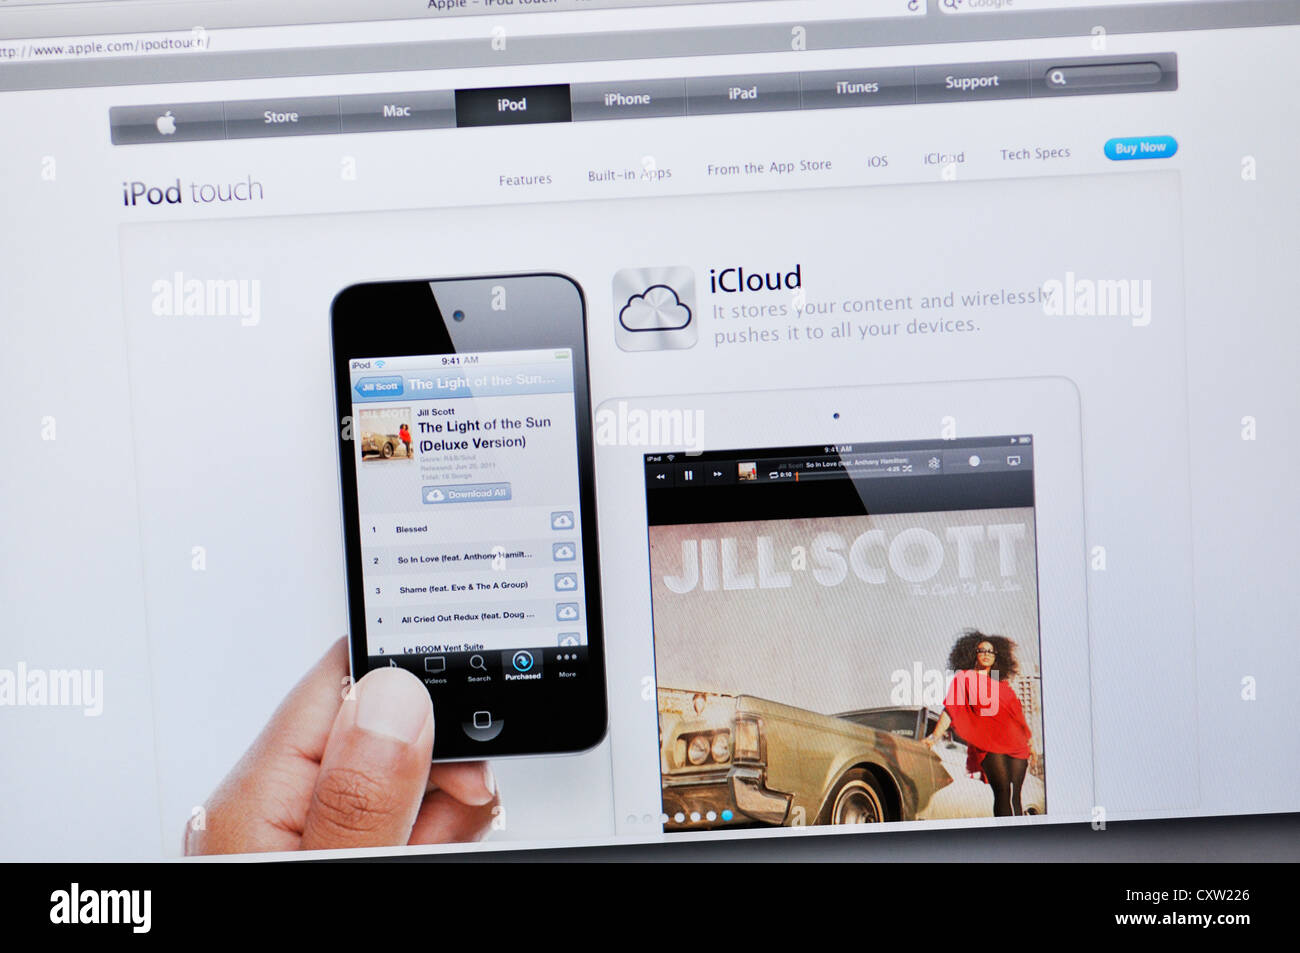 ipad apple store website stock photo alamy